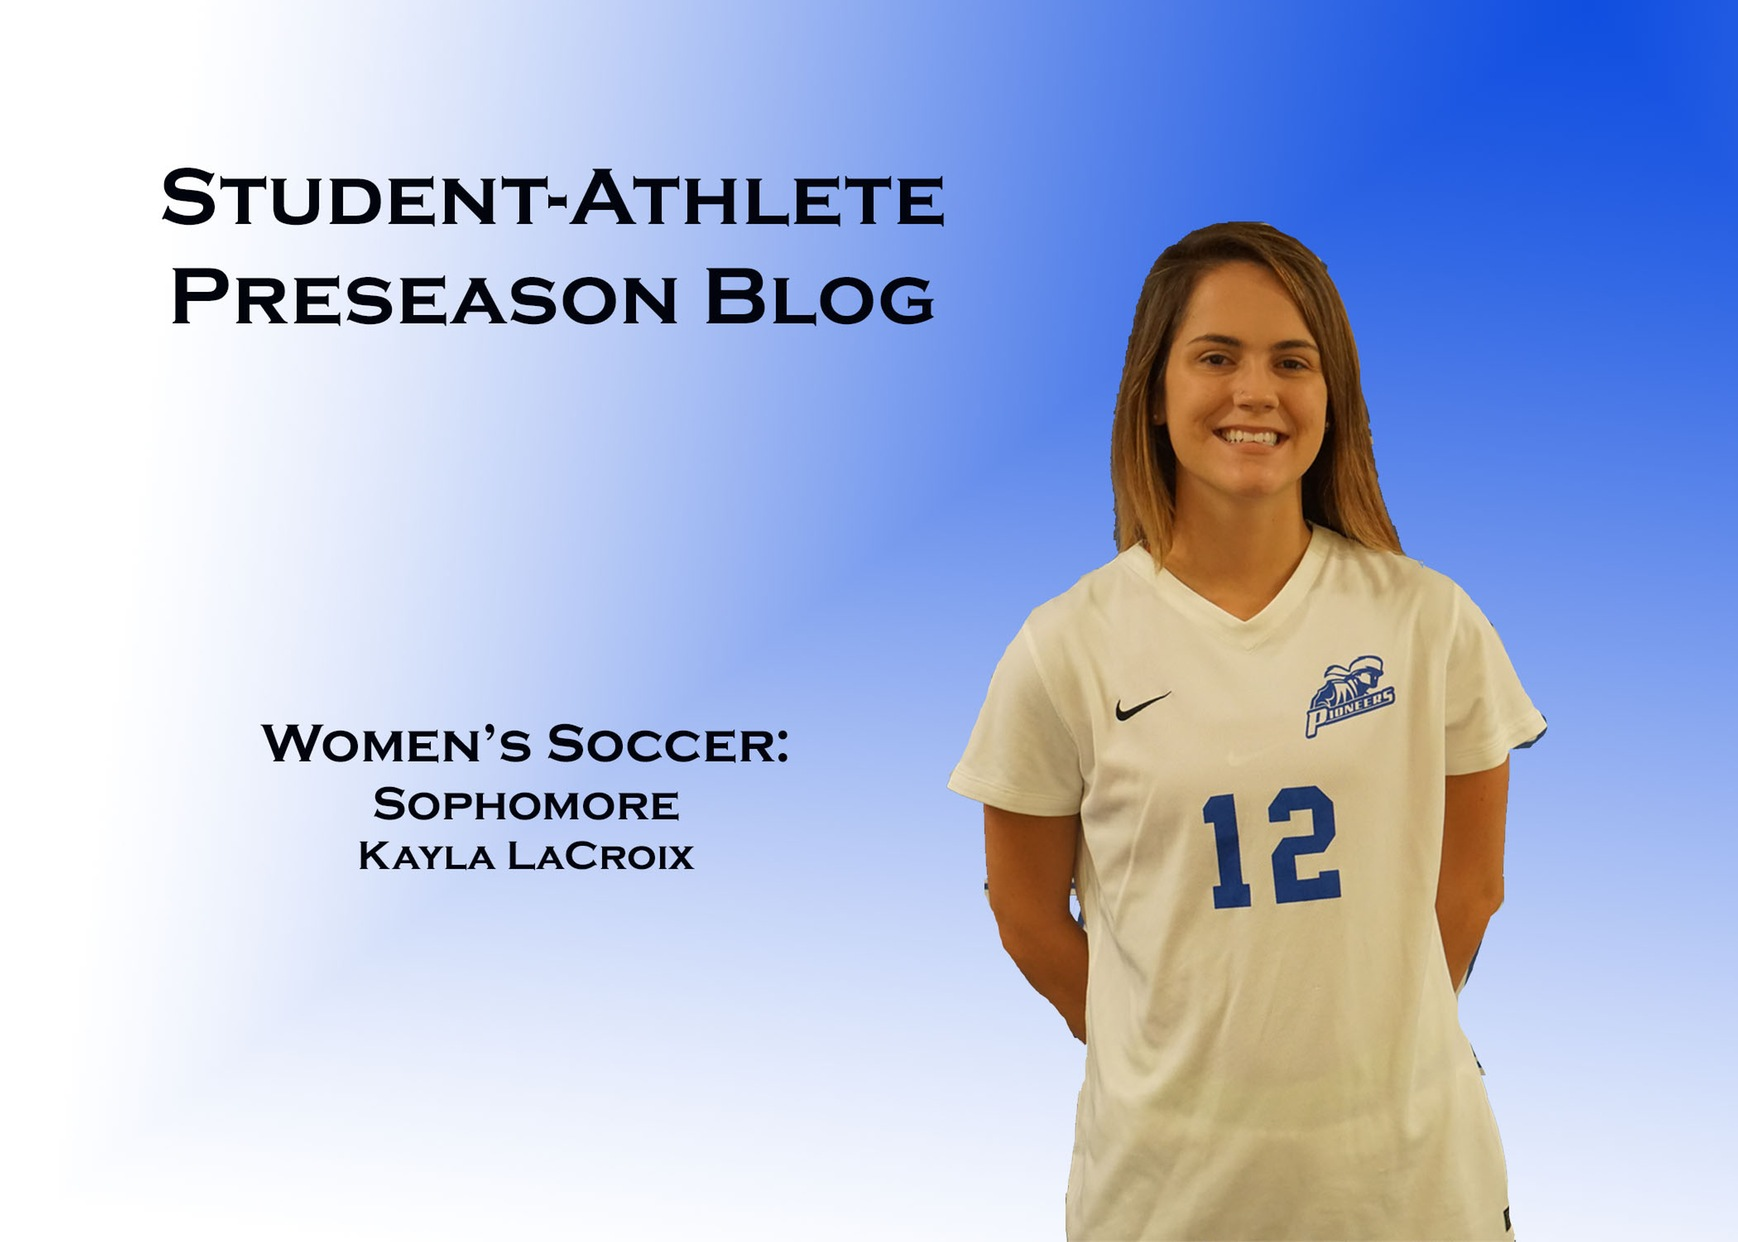 Day Two: Student-Athlete Blog